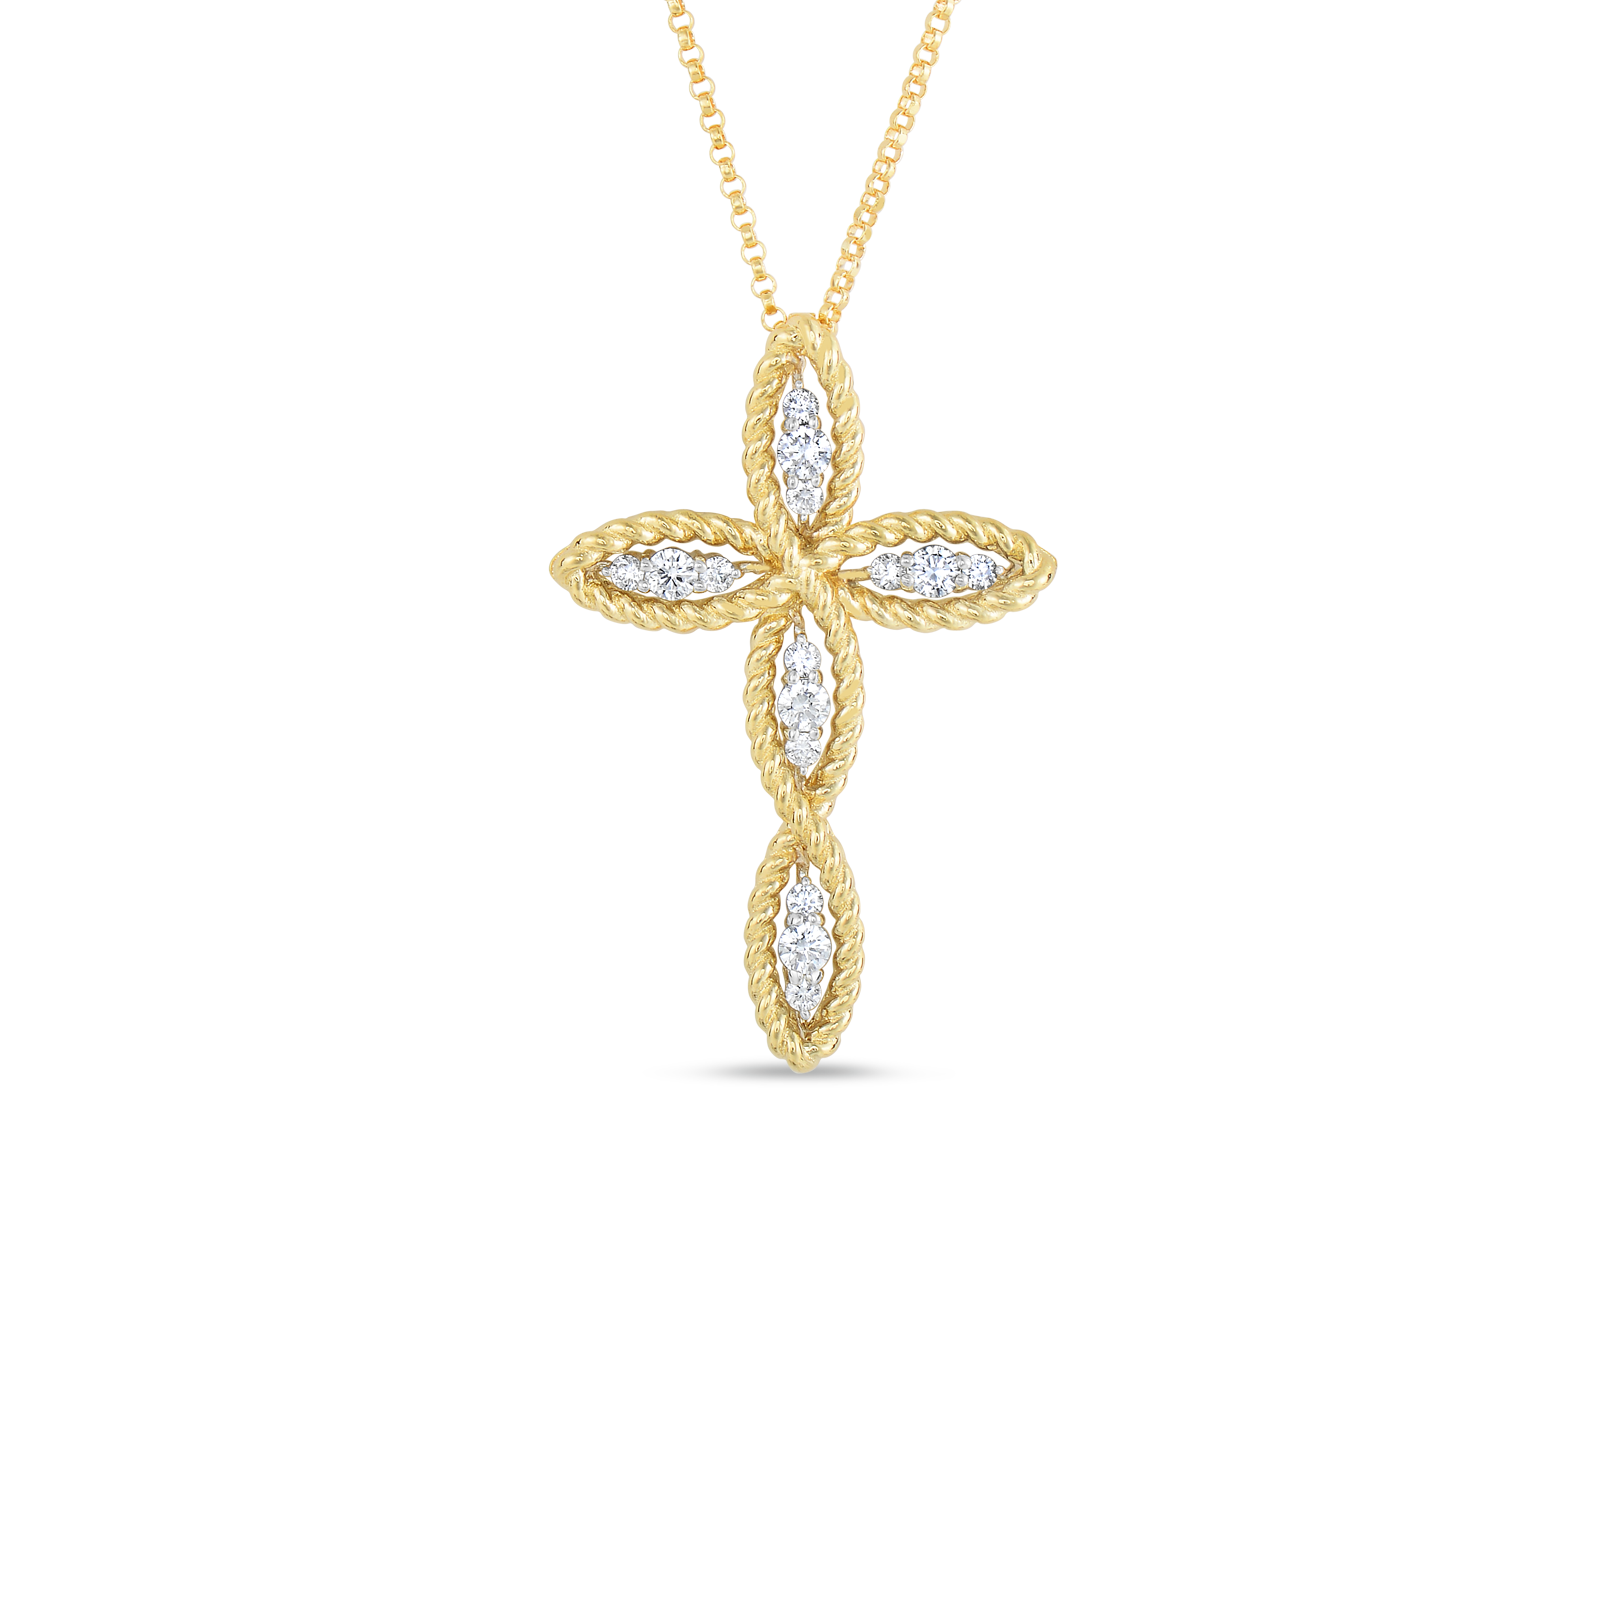 Roberto coin gold cross pendant with diamonds santa fe jewelry aloadofball